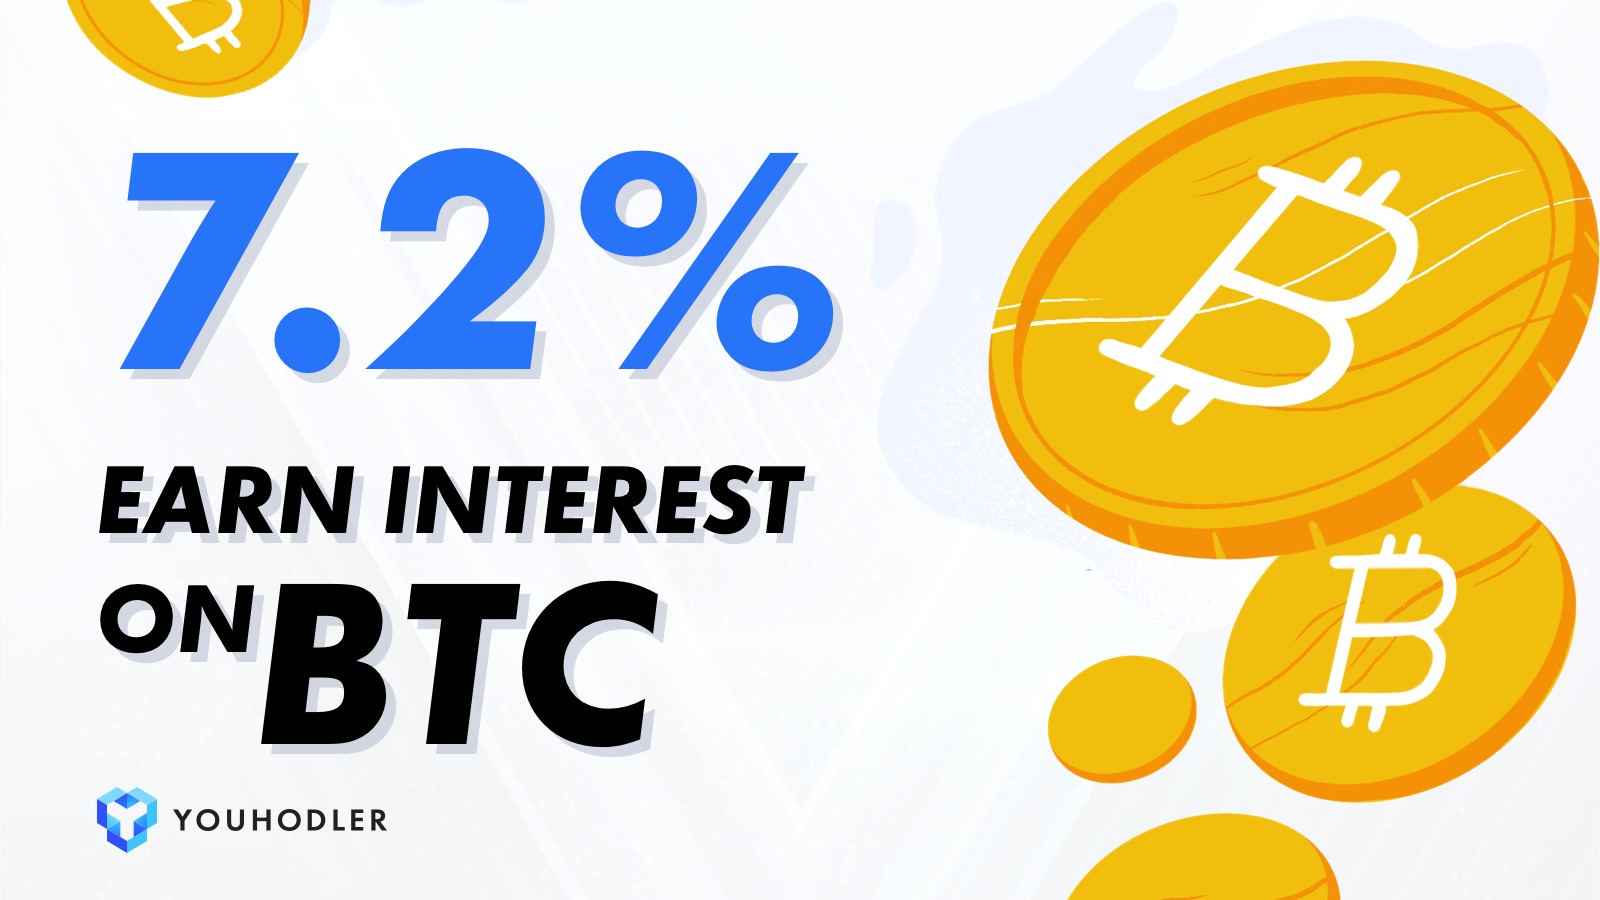 Available for all YouHodler clients, BTC savings account lets users deposit BTC into a wallet on the platform which will grow up to 7.2% each year..